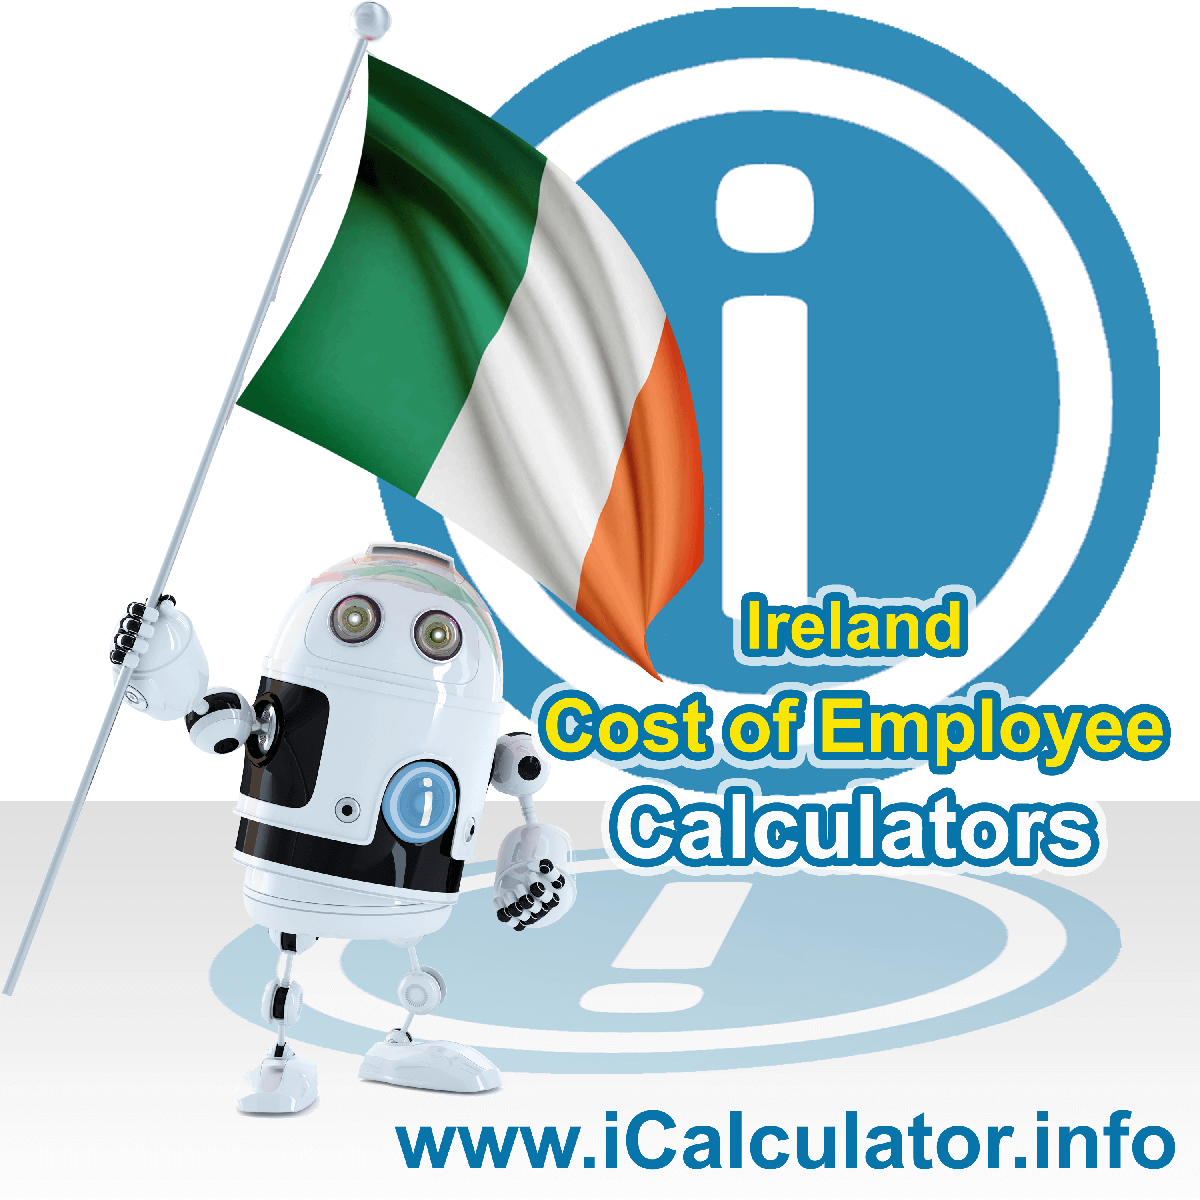 Ireland Payroll Calculator. This image shows a new employer in Ireland looking at payroll and human resource services in Ireland as they want to hire an employee in Ireland but are not sure of the employment costs. So, they make use of the Ireland payroll calculator to understand their employment cost in Ireland in 2020